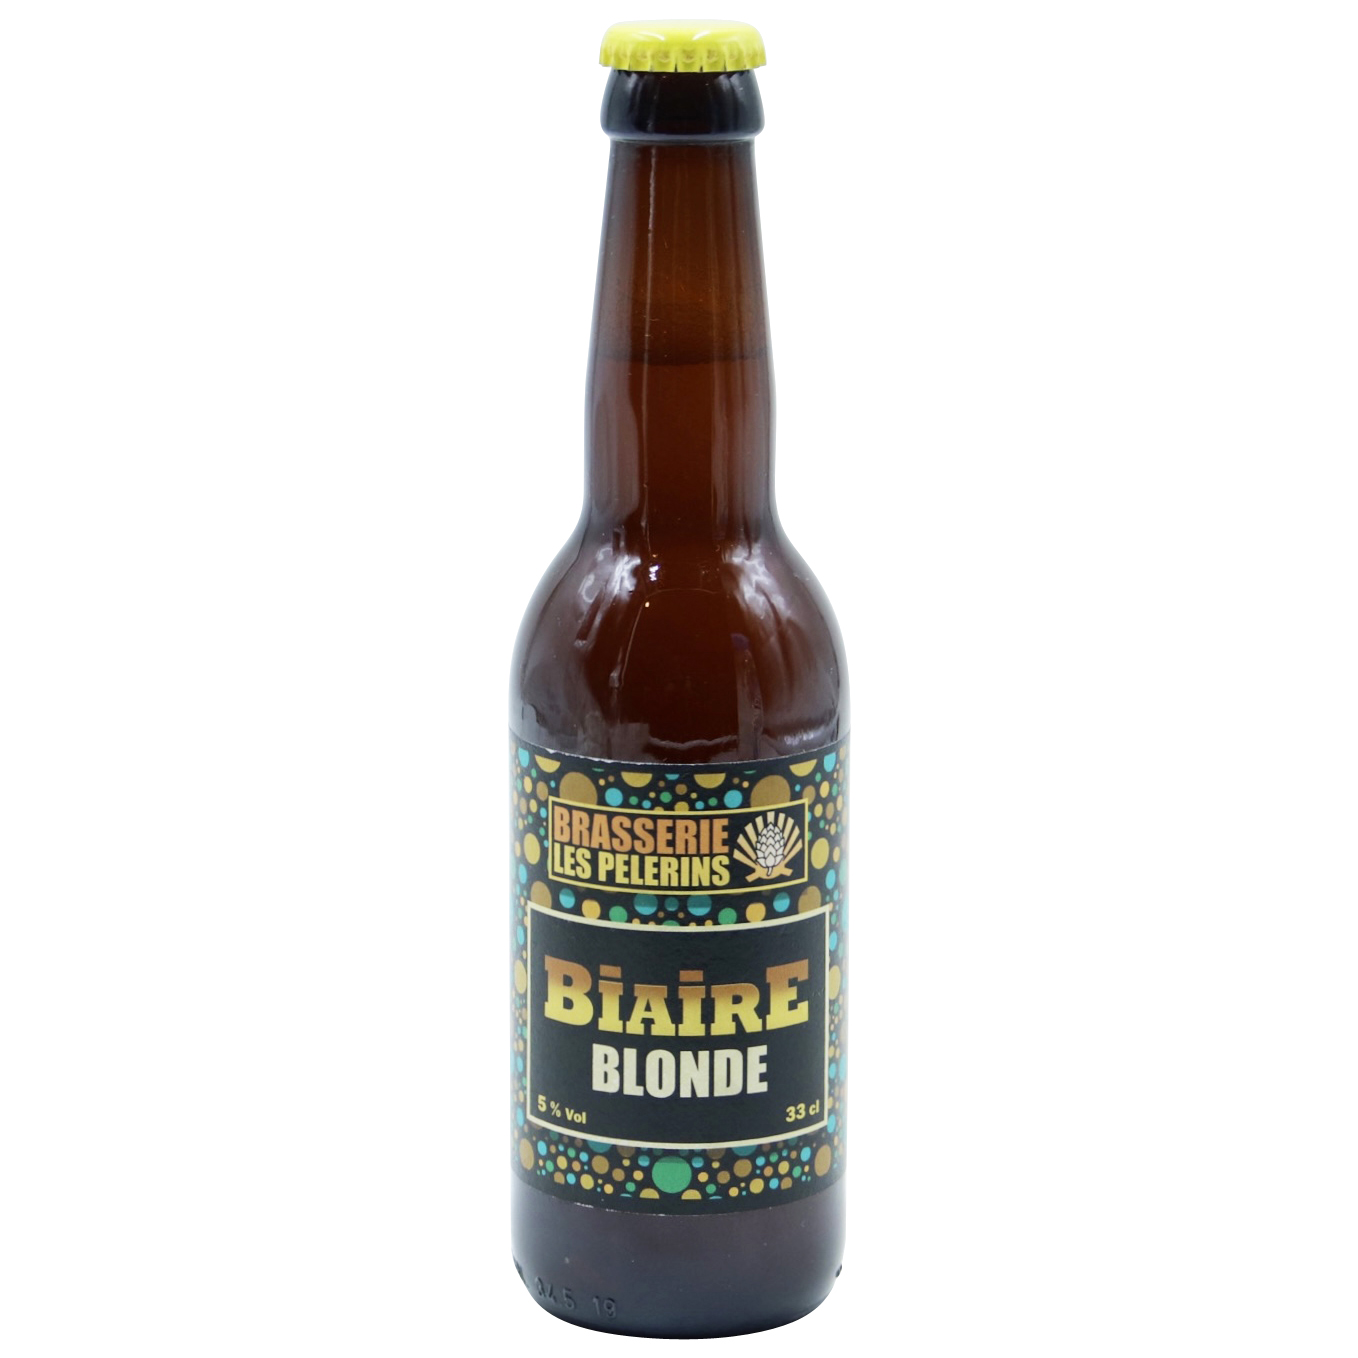 BIAIRE BLONDE 33cl